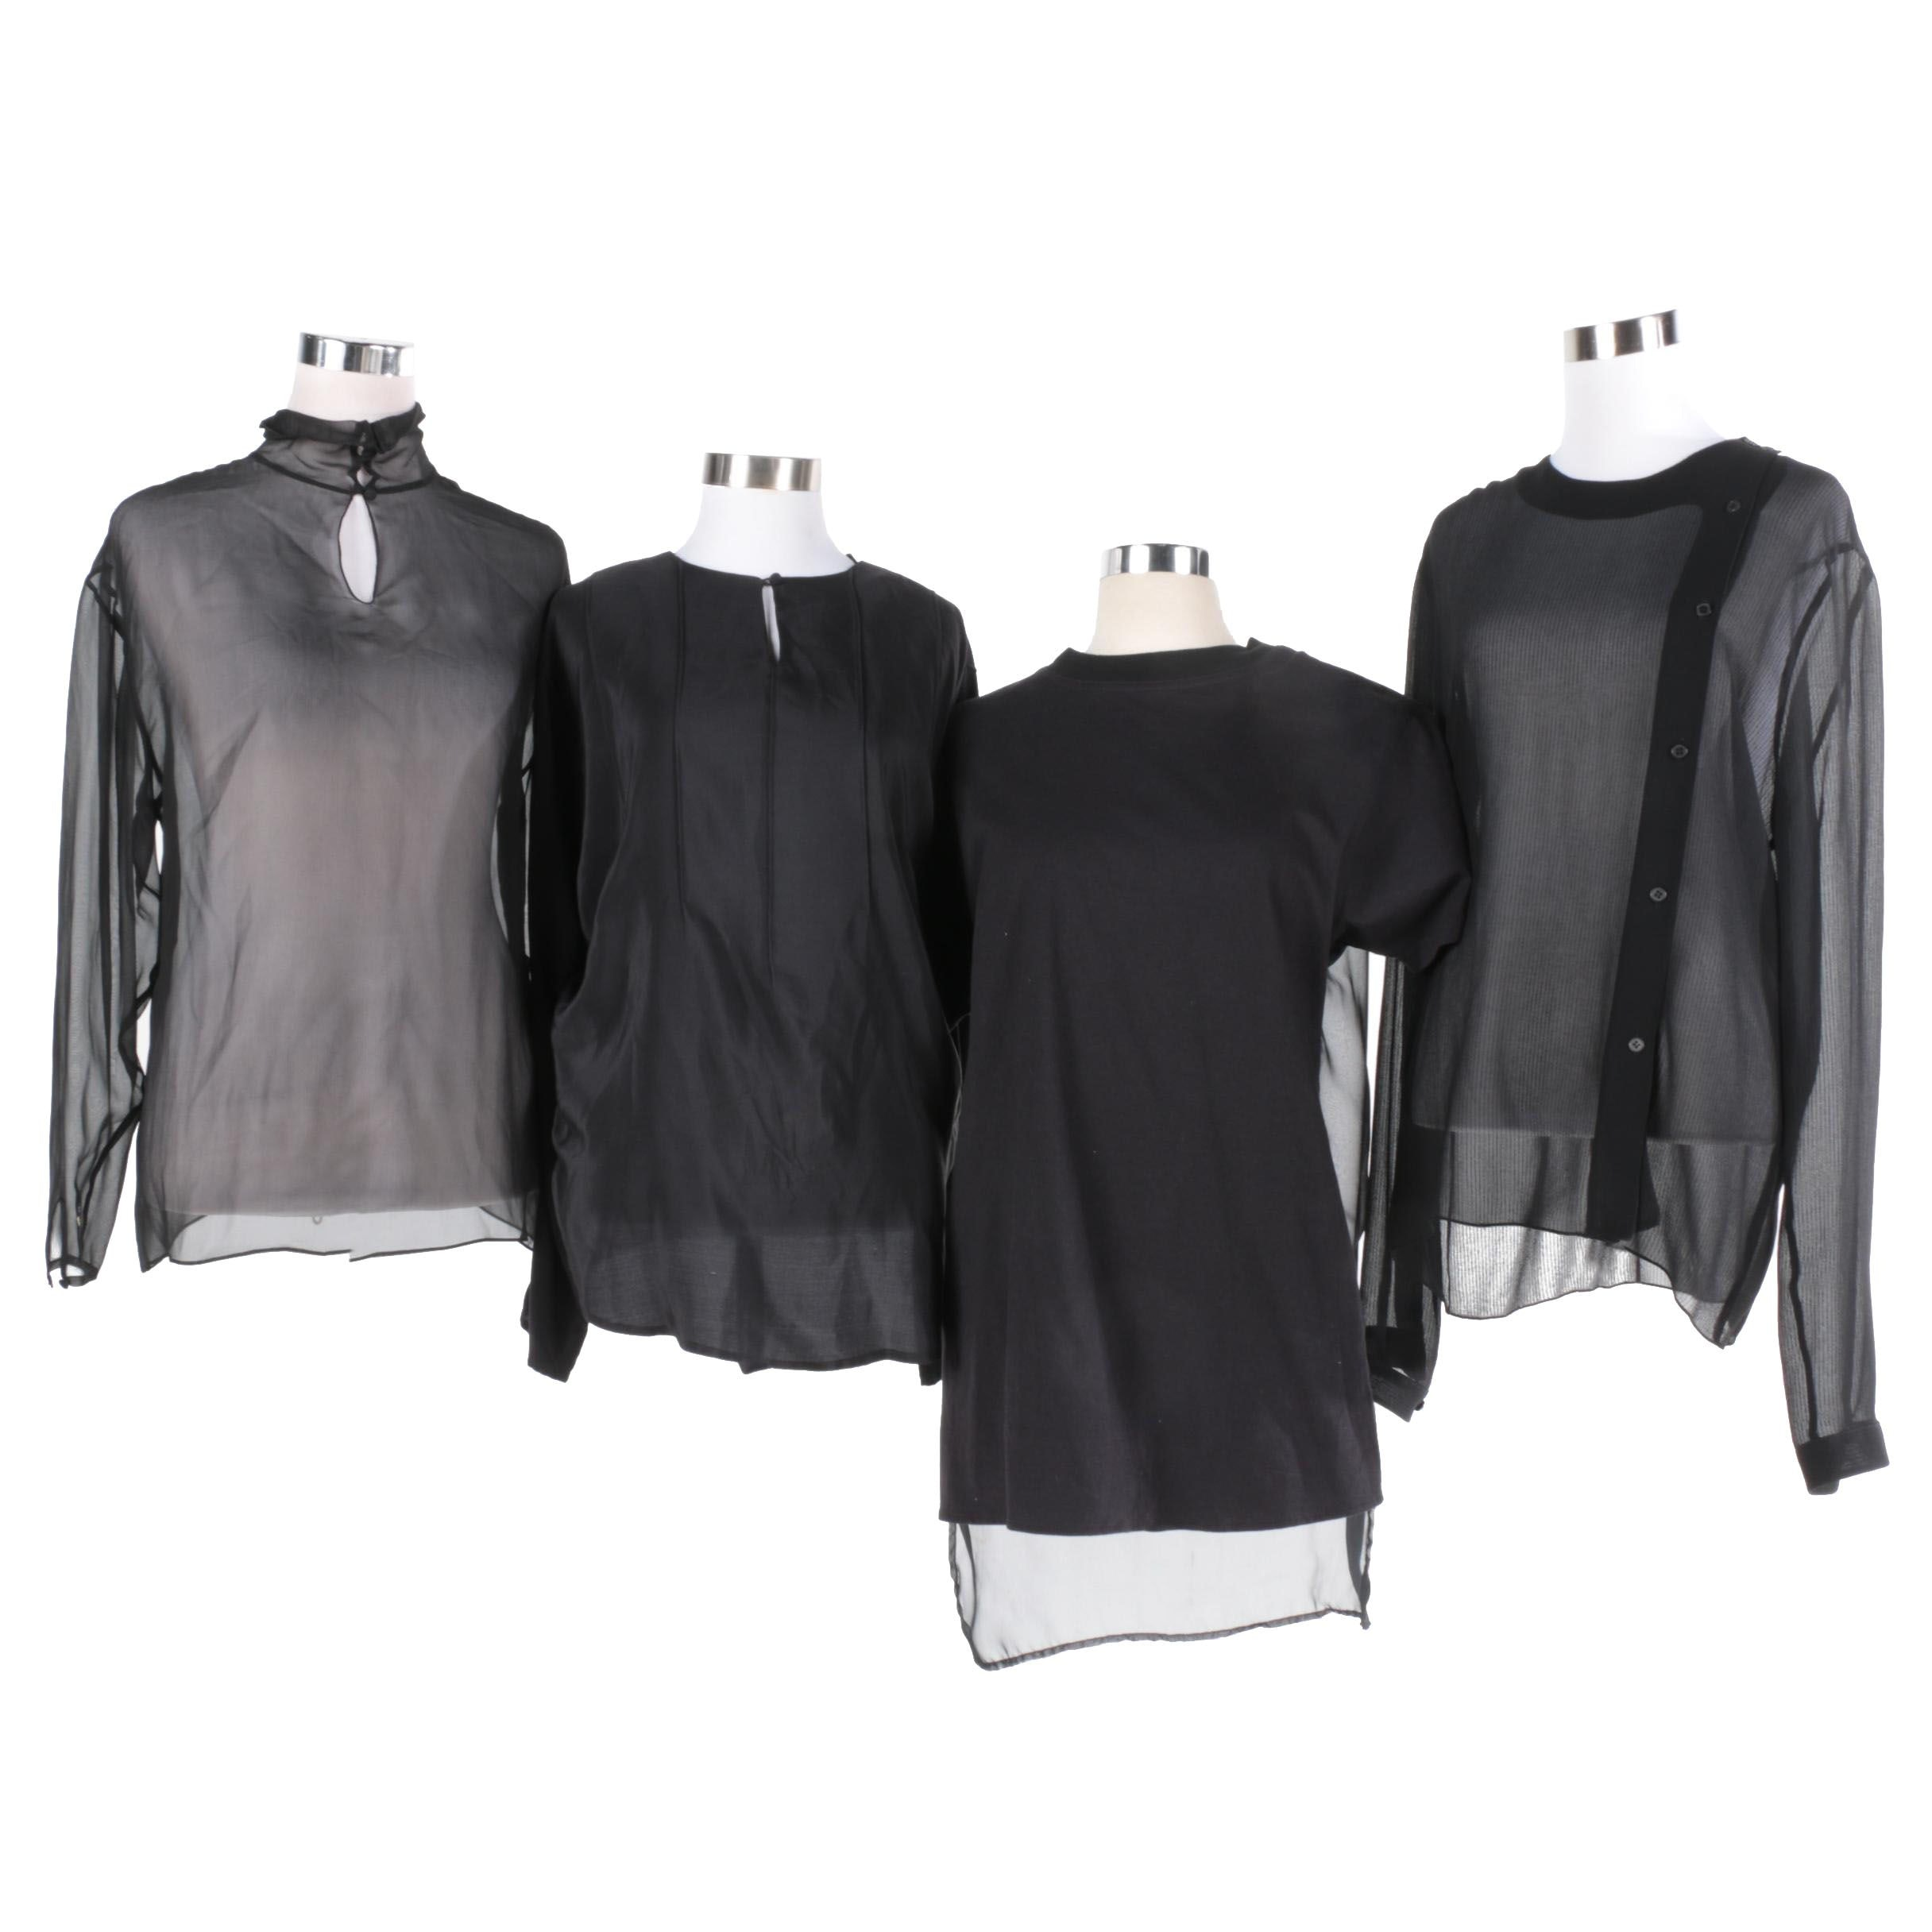 Women's Black Tops Including Calvin Klein and Flora Kung